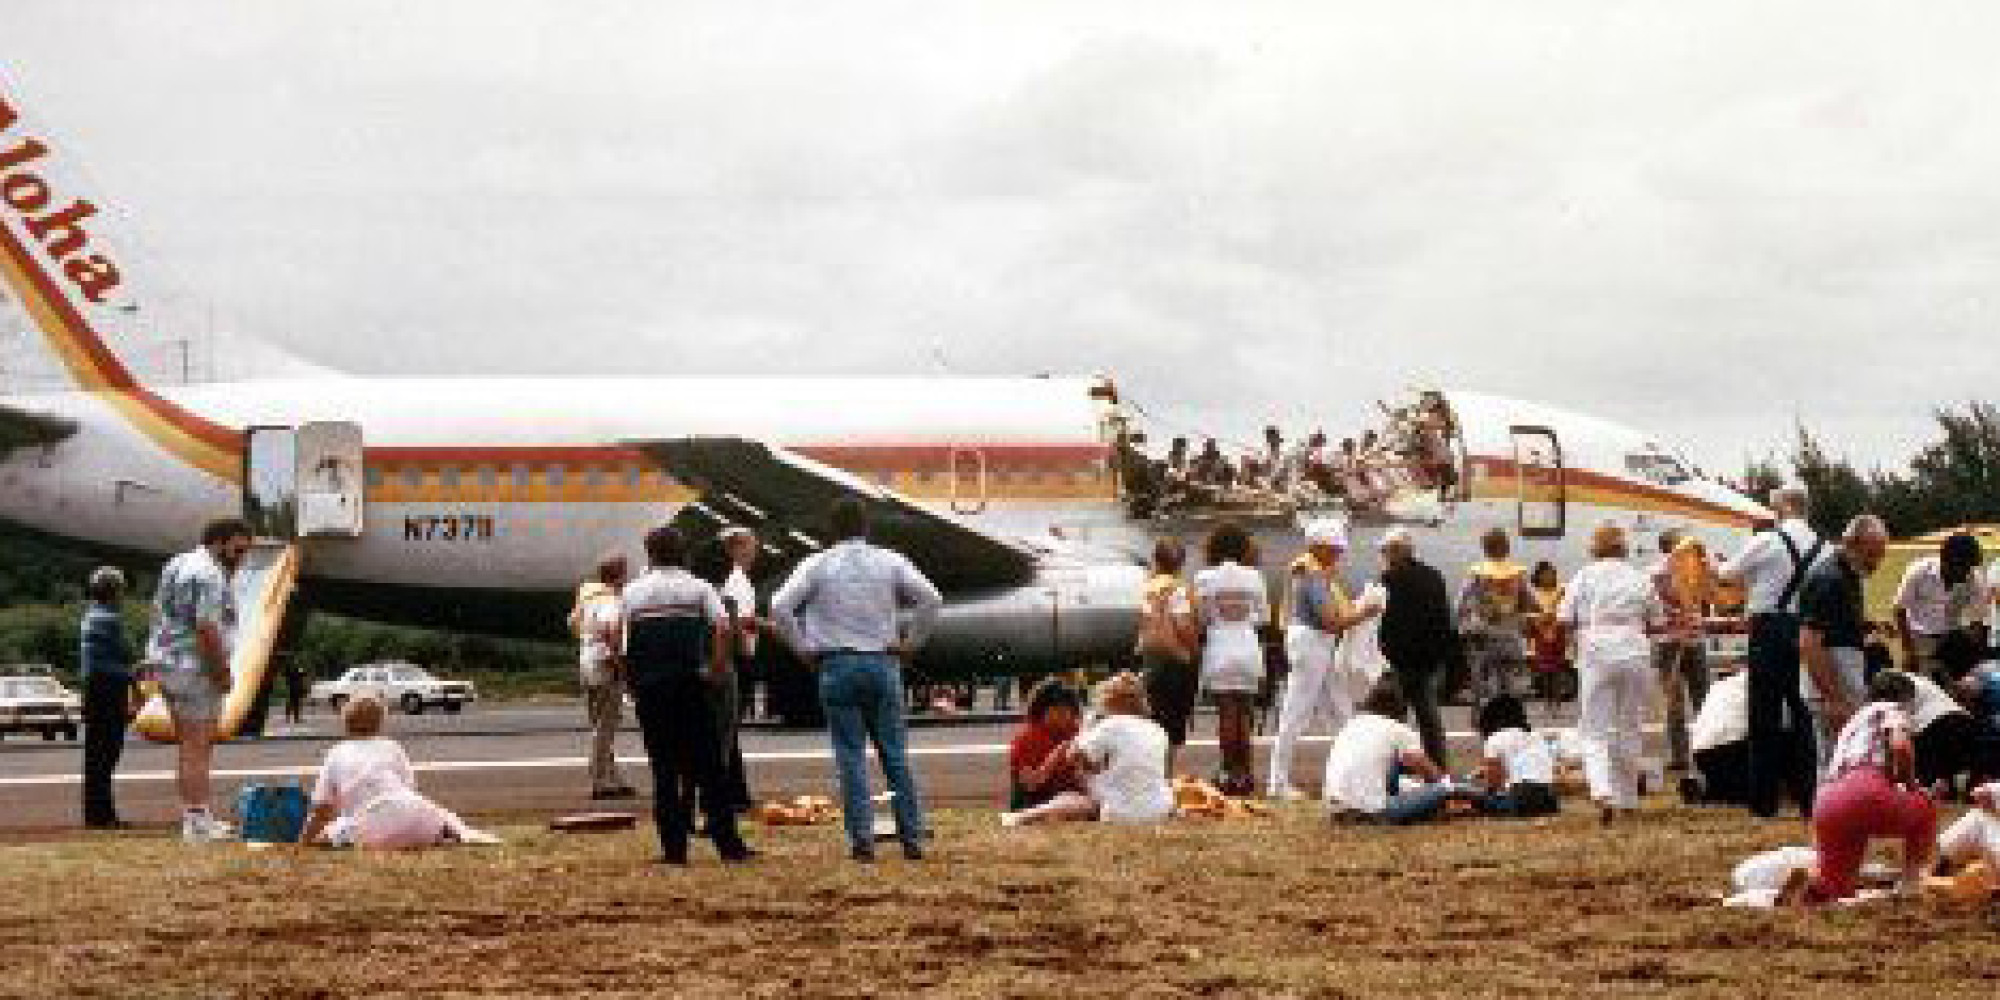 human factors on aloha 243 Figure 11 the evolution of aviation maintenance human factors training maintenance resource management is the result of a series of events that drove its development maintenance-based human factors training in 1988, aloha airlines flight 243 suffered a near-catastrophic failure4.